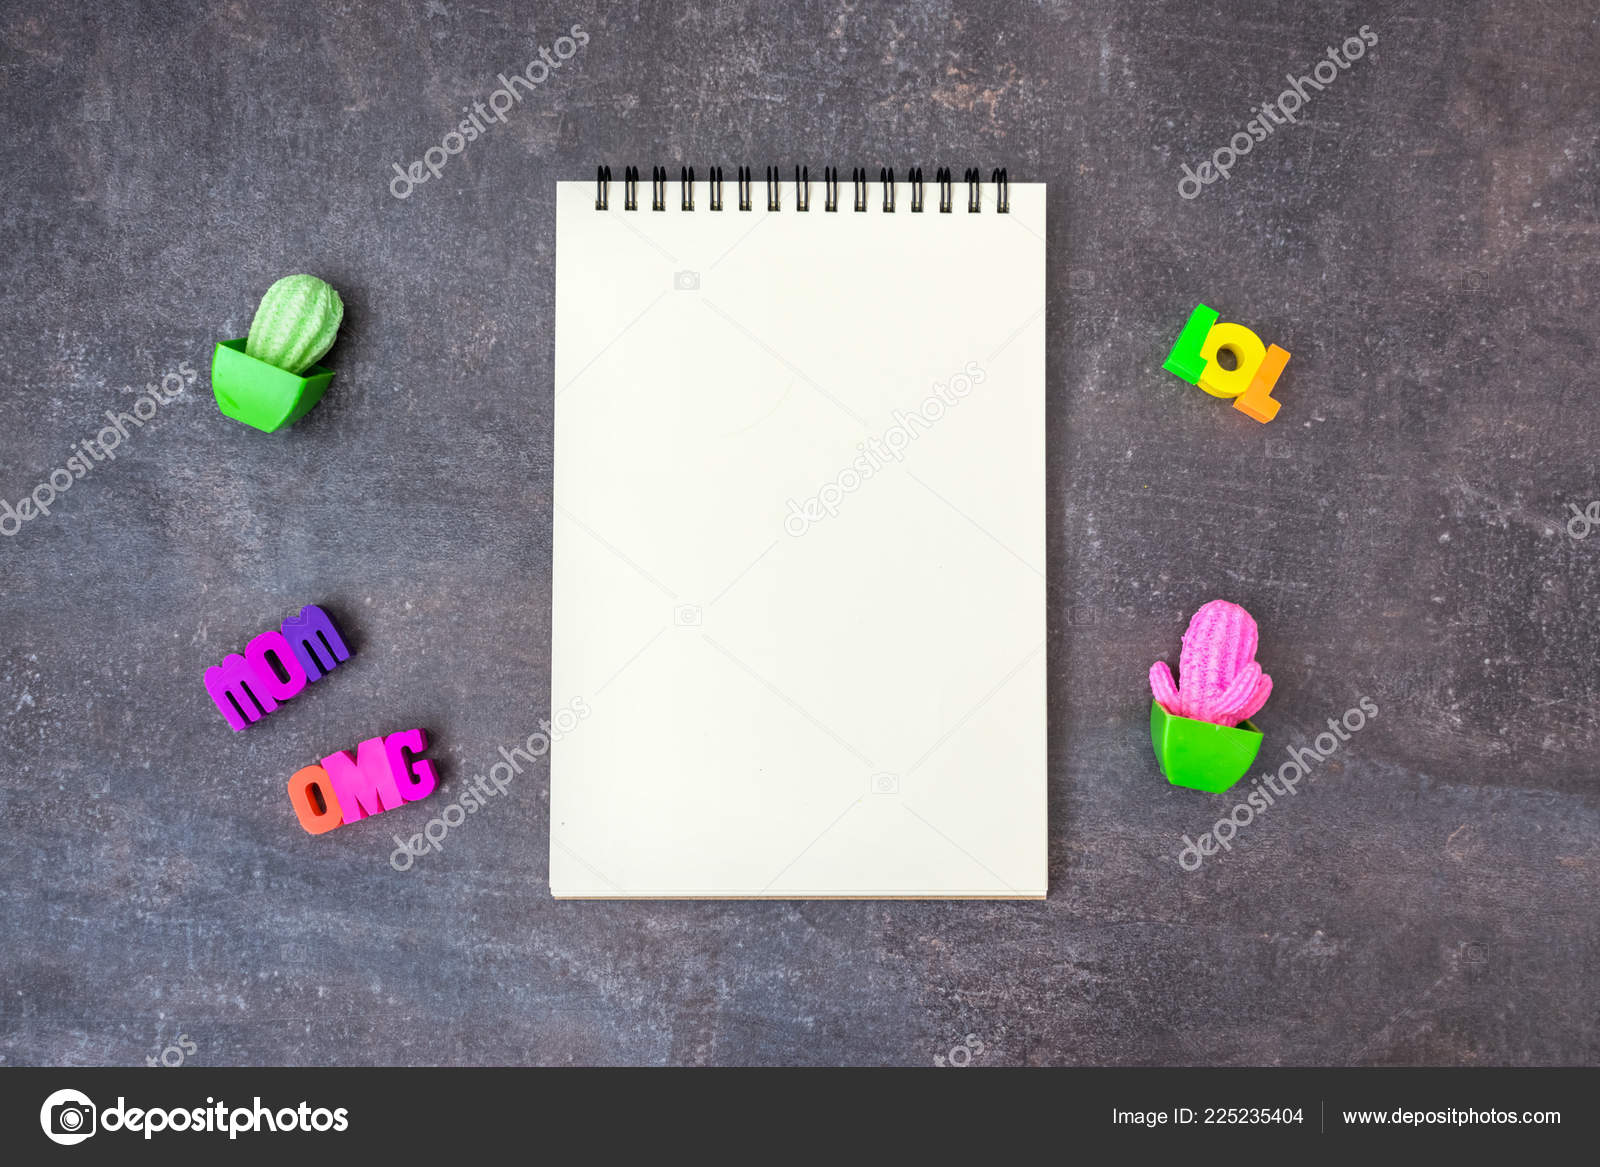 hipster youth cool mockup blank notebook toy cactuses words omg